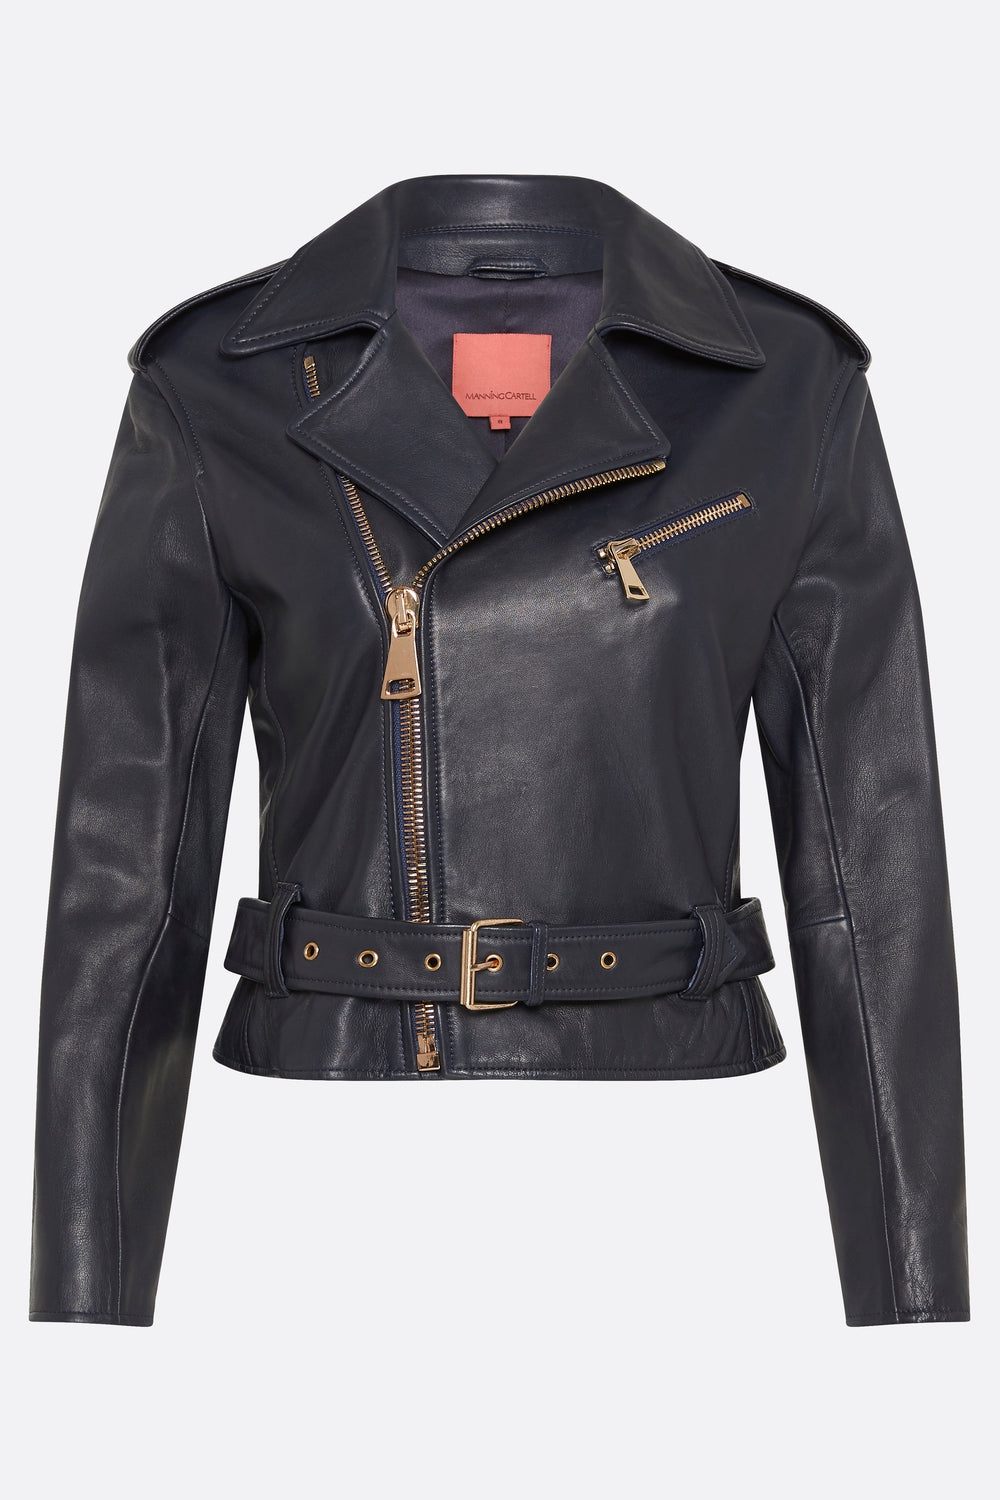 OPEN SEASON LEATHER BIKER JACKET